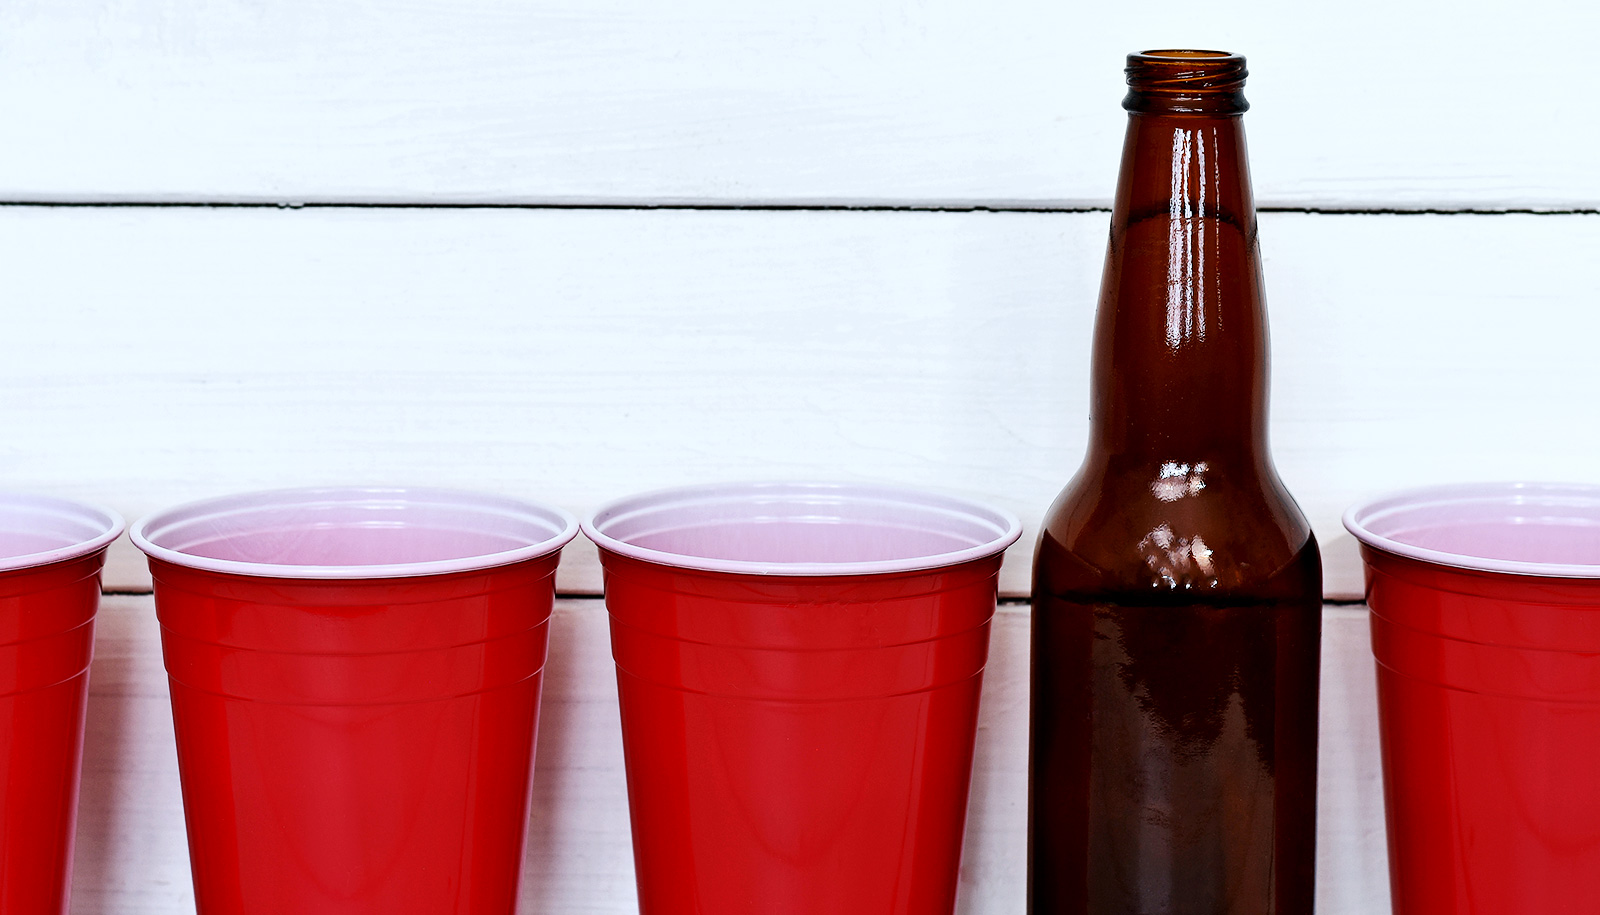 Students tend to drink more when they think parents don't